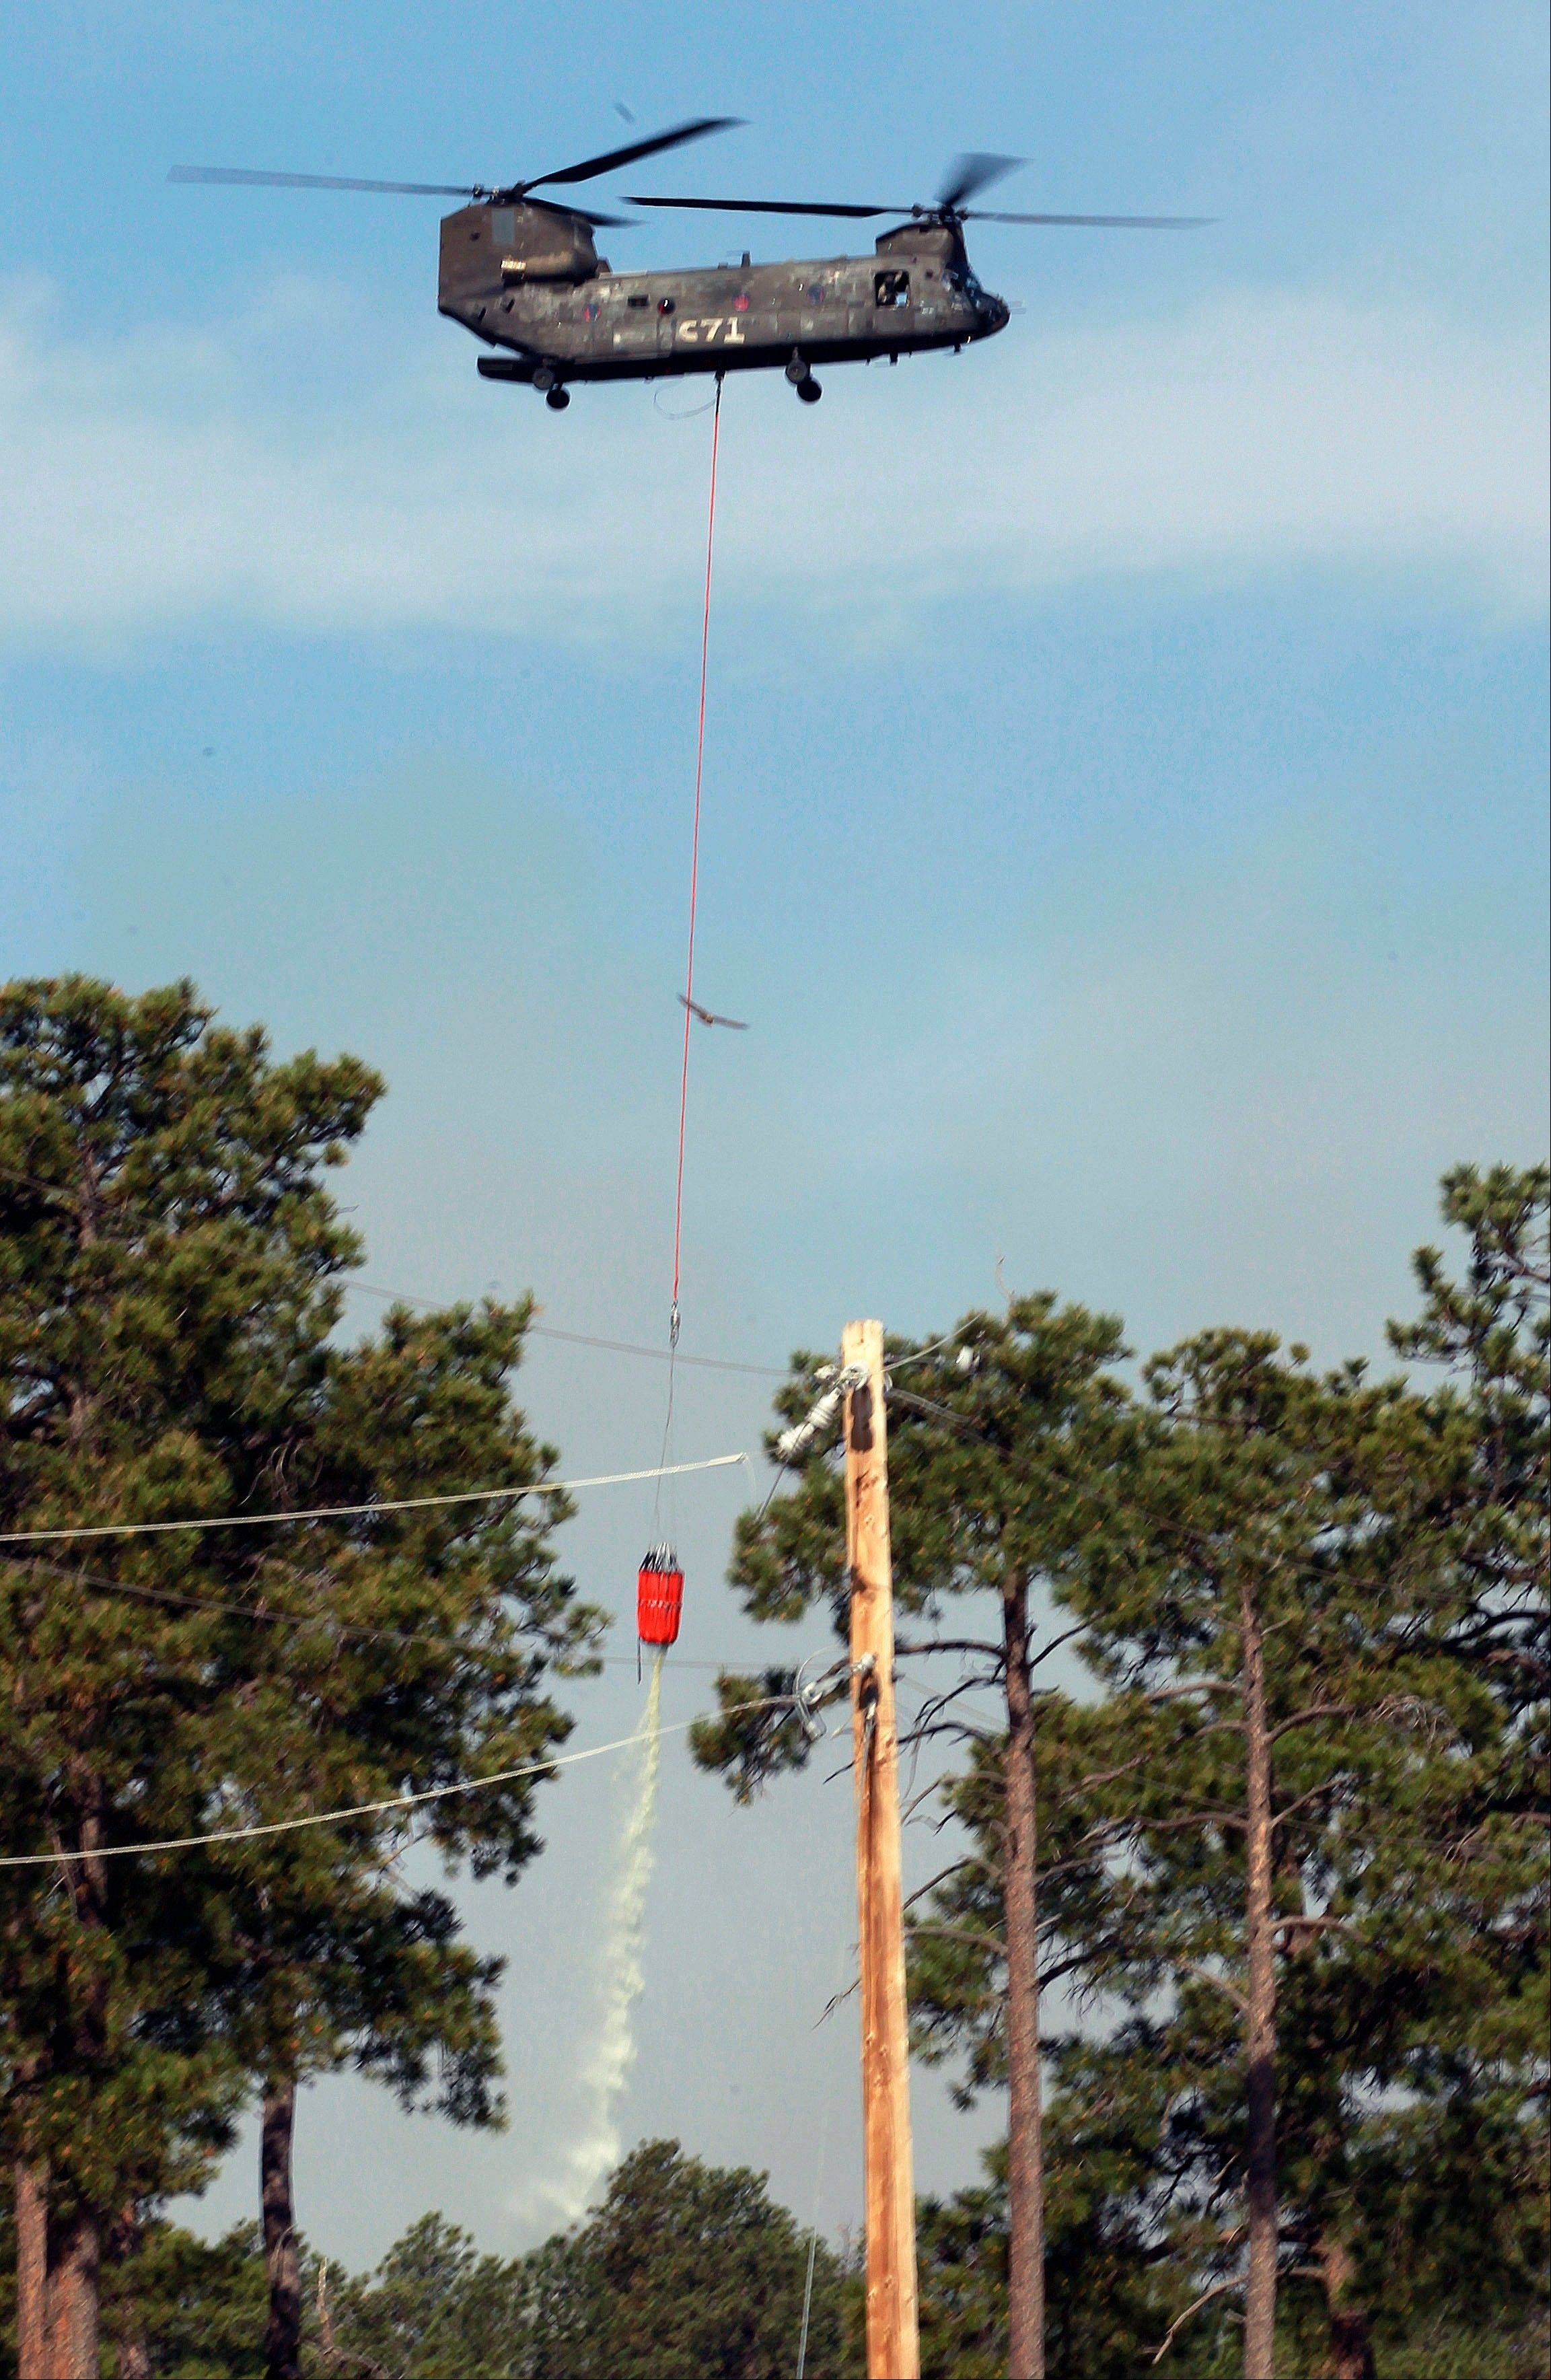 A U.S. Army Chinook helicopter drops a load of water on the Black Forest wildfire, north of Colorado Springs, Colo., on Thursday, June 13, 2013.